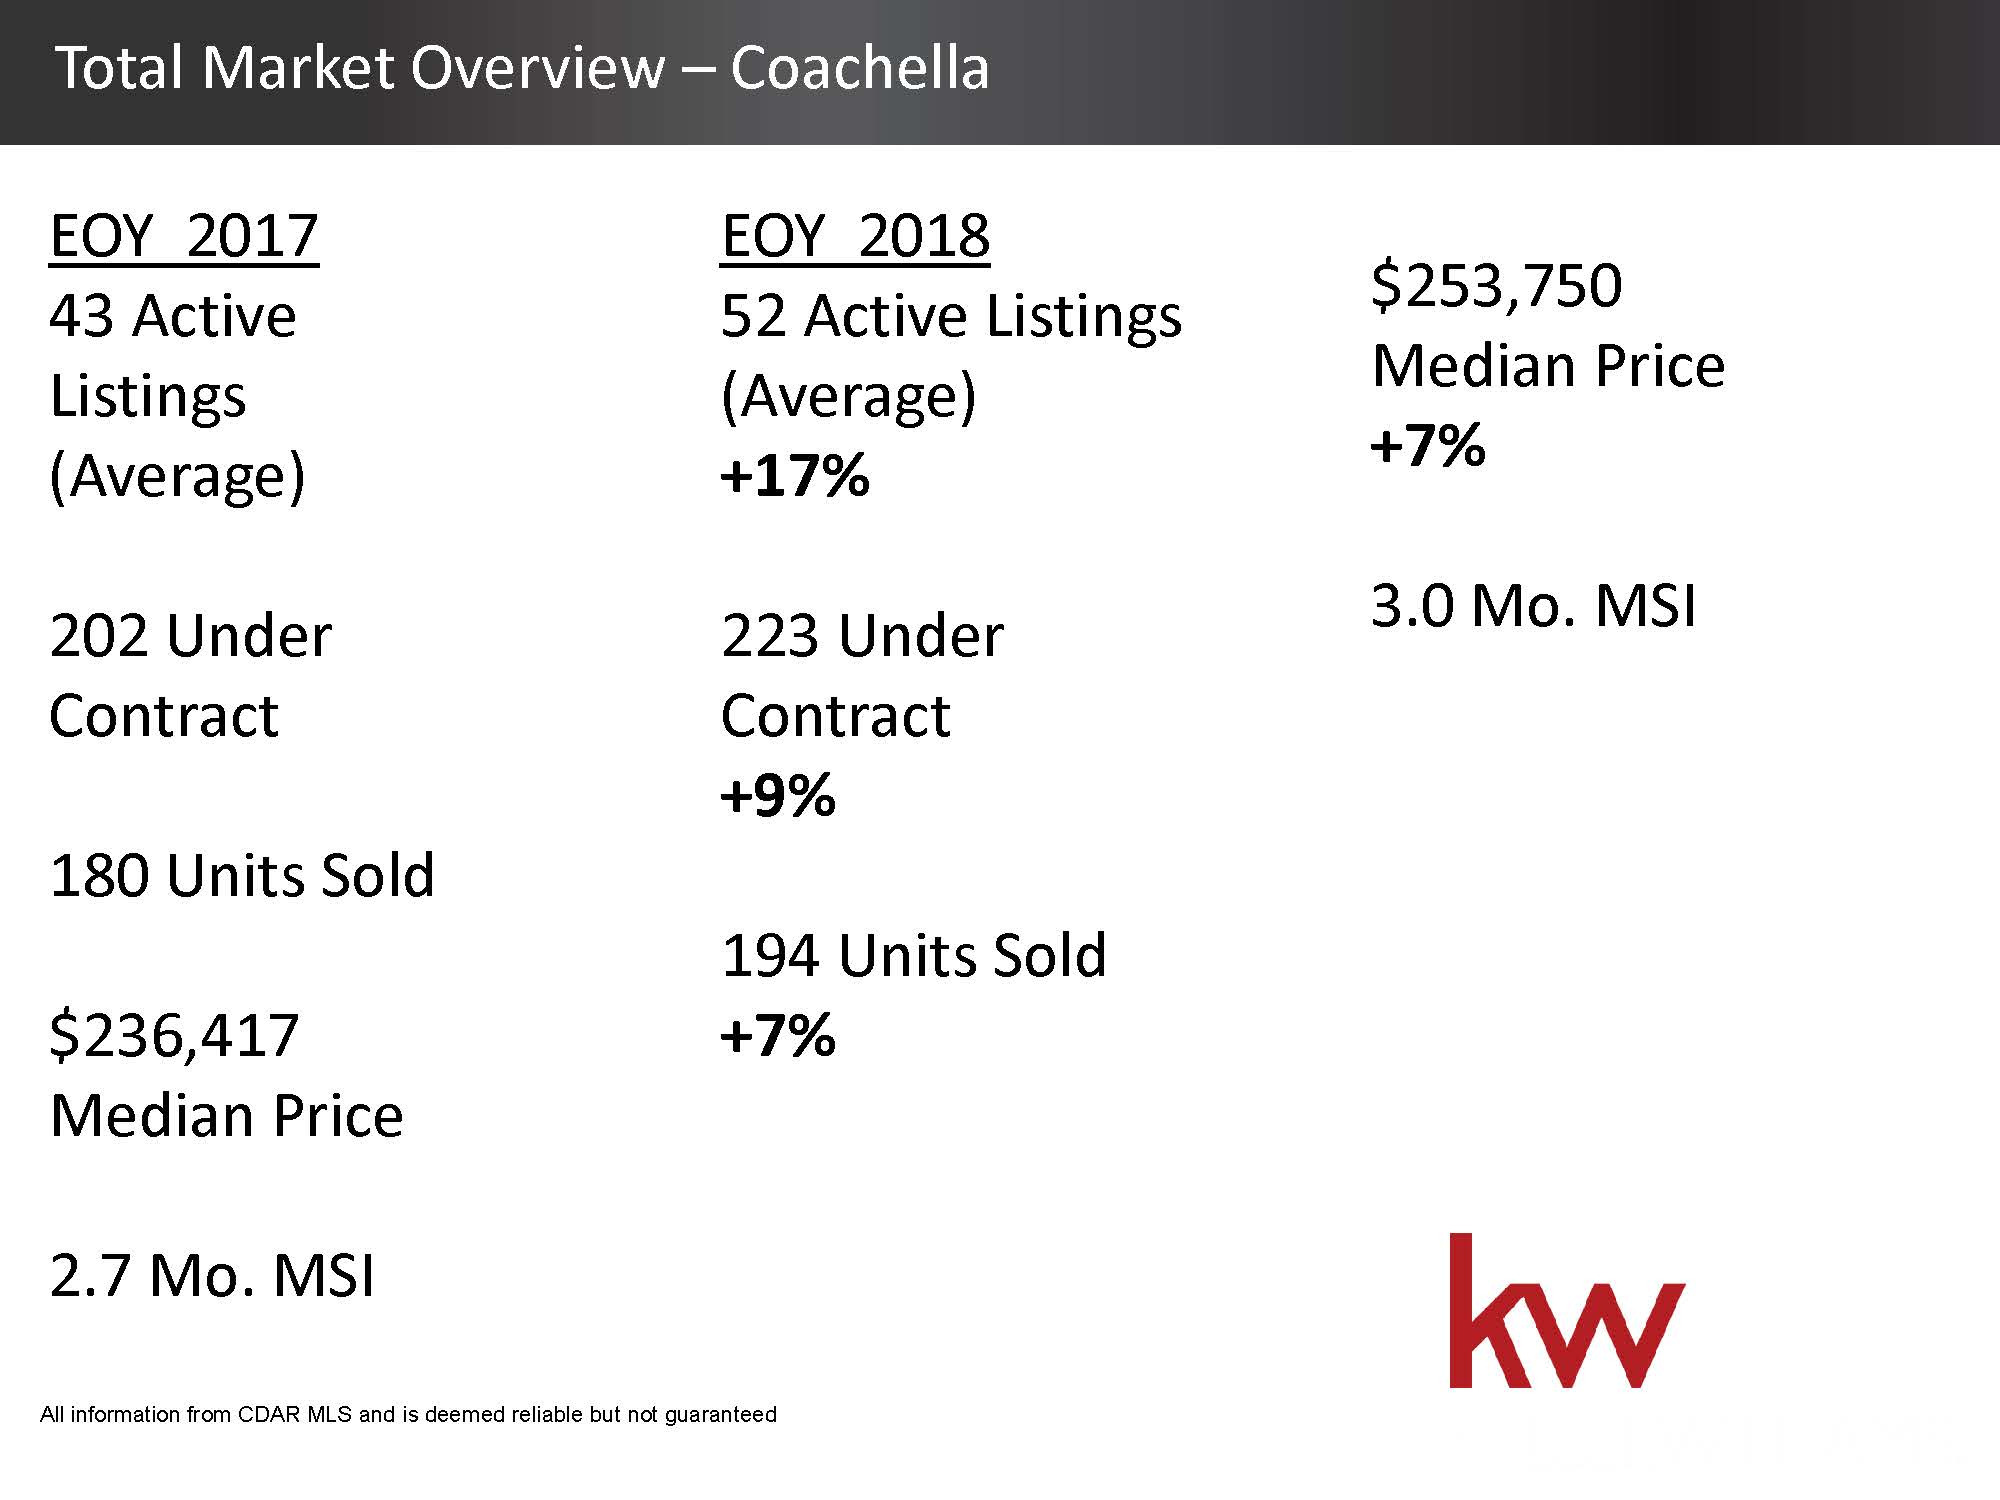 Total Housing Market 2018 Overview - Coachella